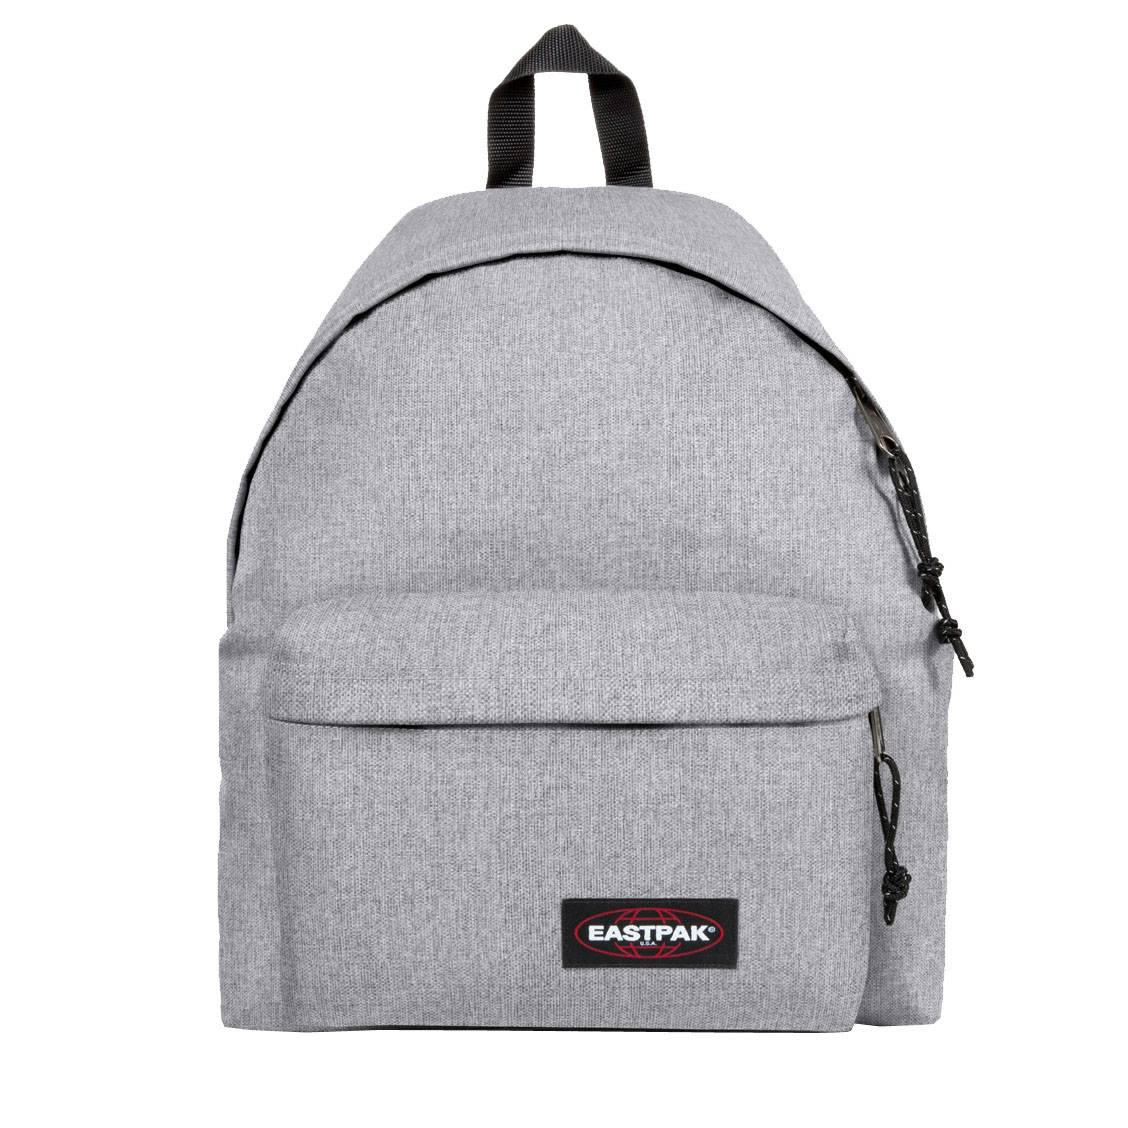 Sacs Eastpak beiges 24L